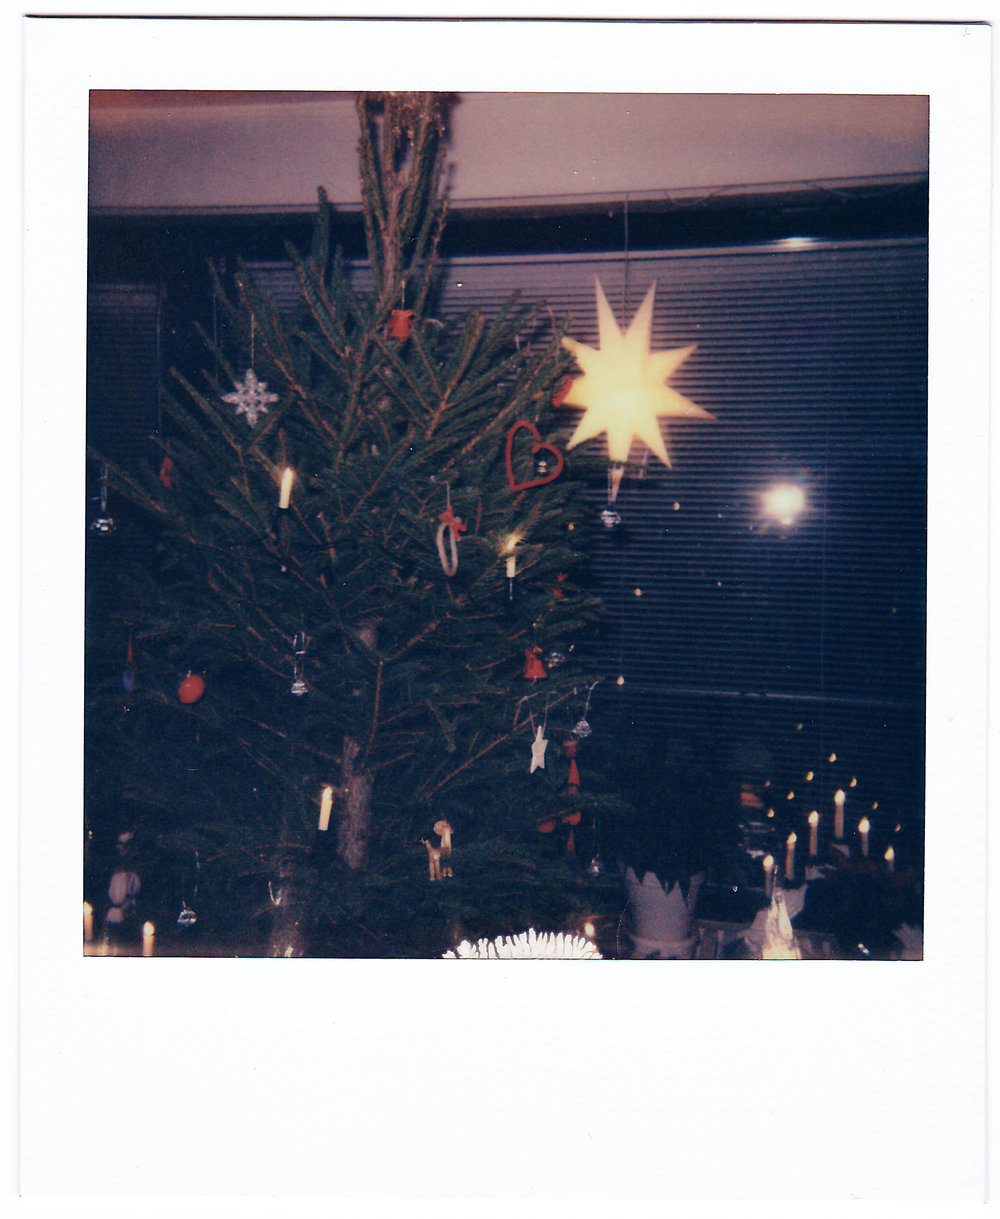 Christmas Eve in Lauttausaari.